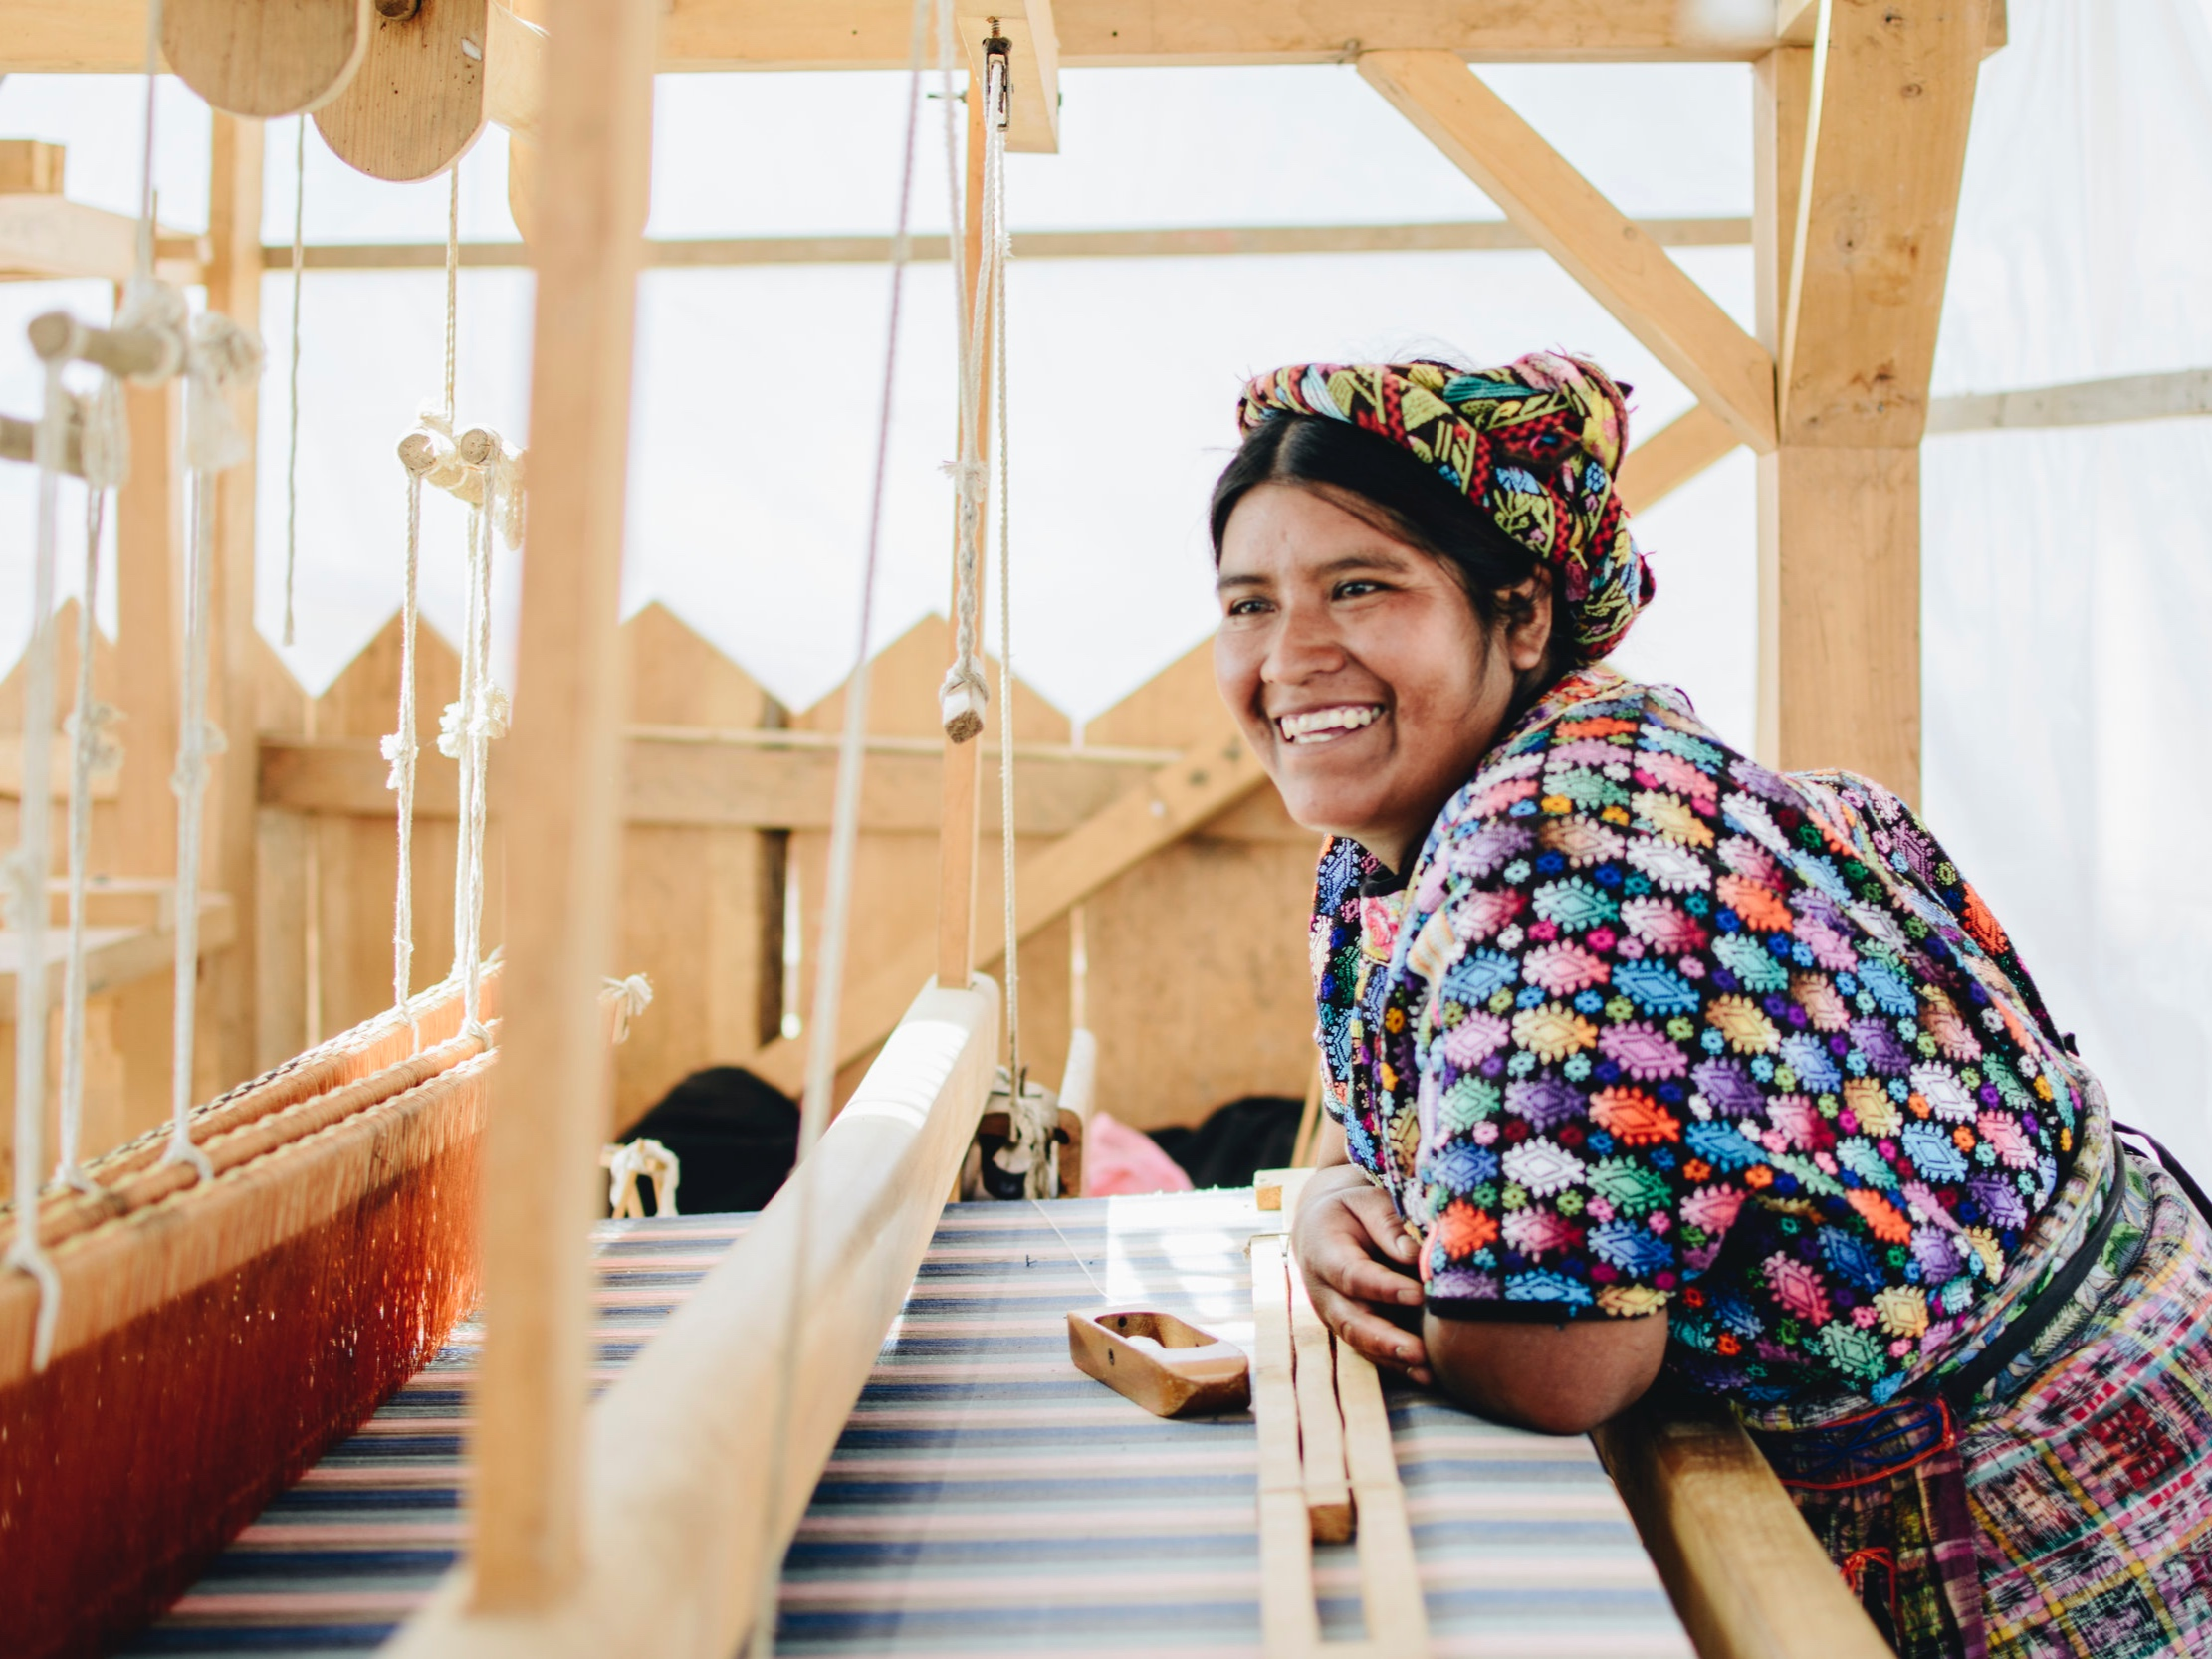 """Pixan - House of Design Pixan is a fair trade textile workshop in the western Highlands of Guatemala. Pixan, meaning """"spirit"""" in the Maya language of K'iche, is an association of indigenous artisan weavers, expert in the ancient techniques of back-strap and pedal loom weaving and embroidery, and an initiative of AMA (Highland Support Project's organizational partner)."""